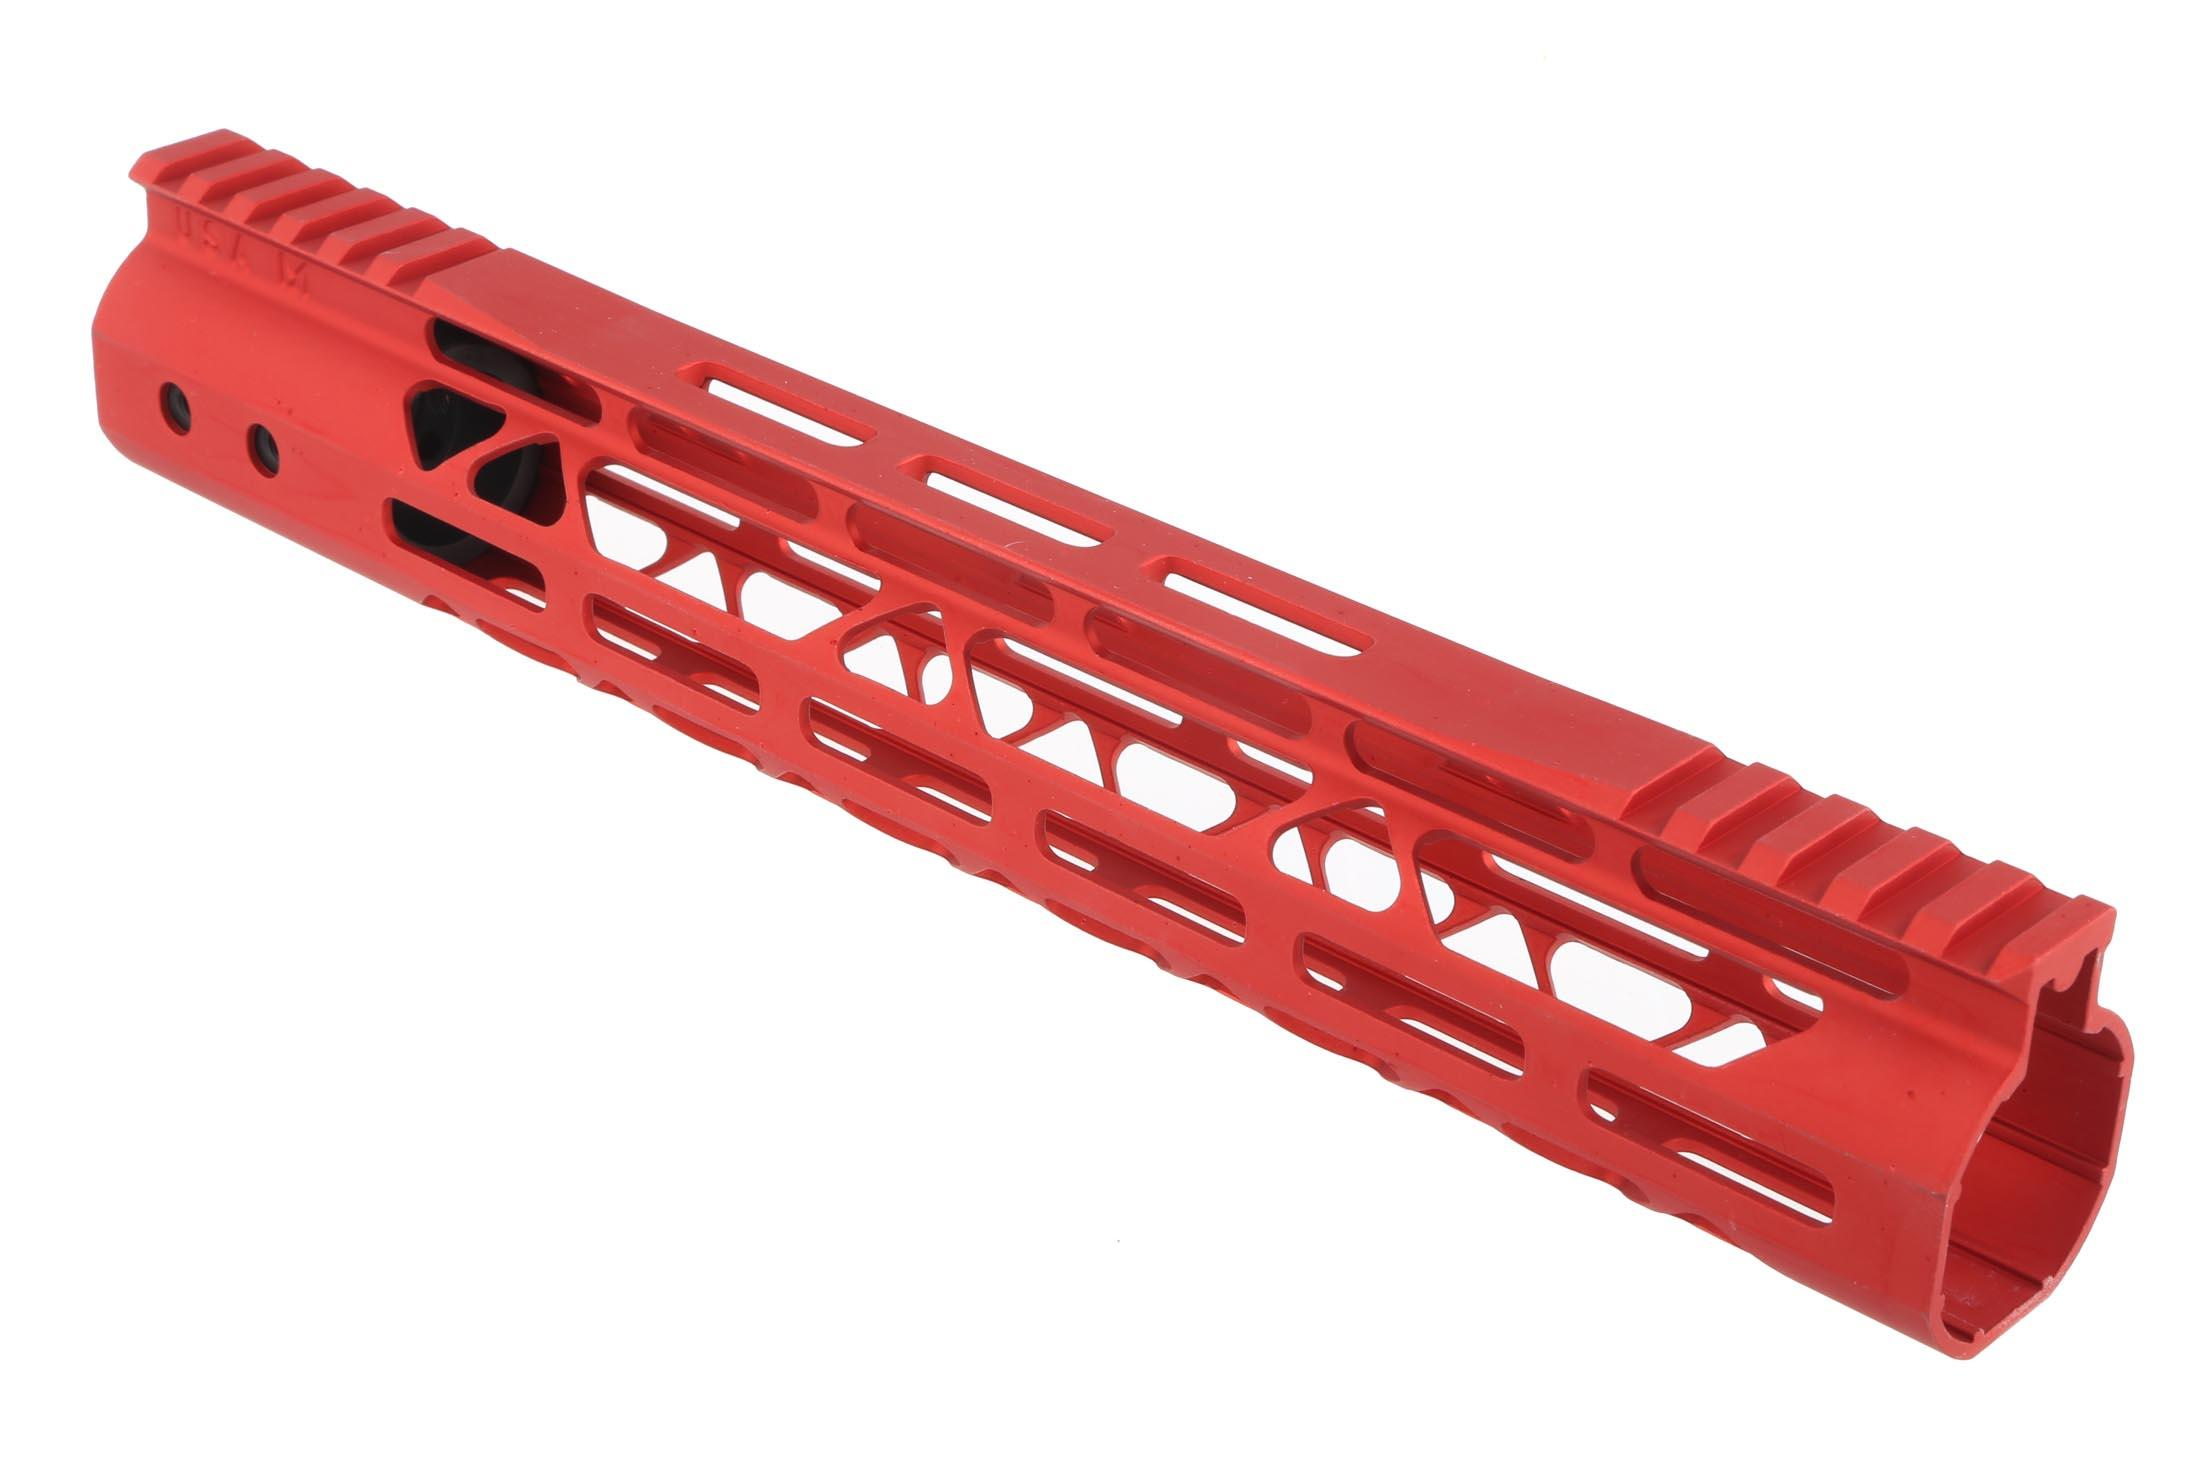 Guntec USA 12in MOD Lite Skeletonized Handguard - M-LOK - Red